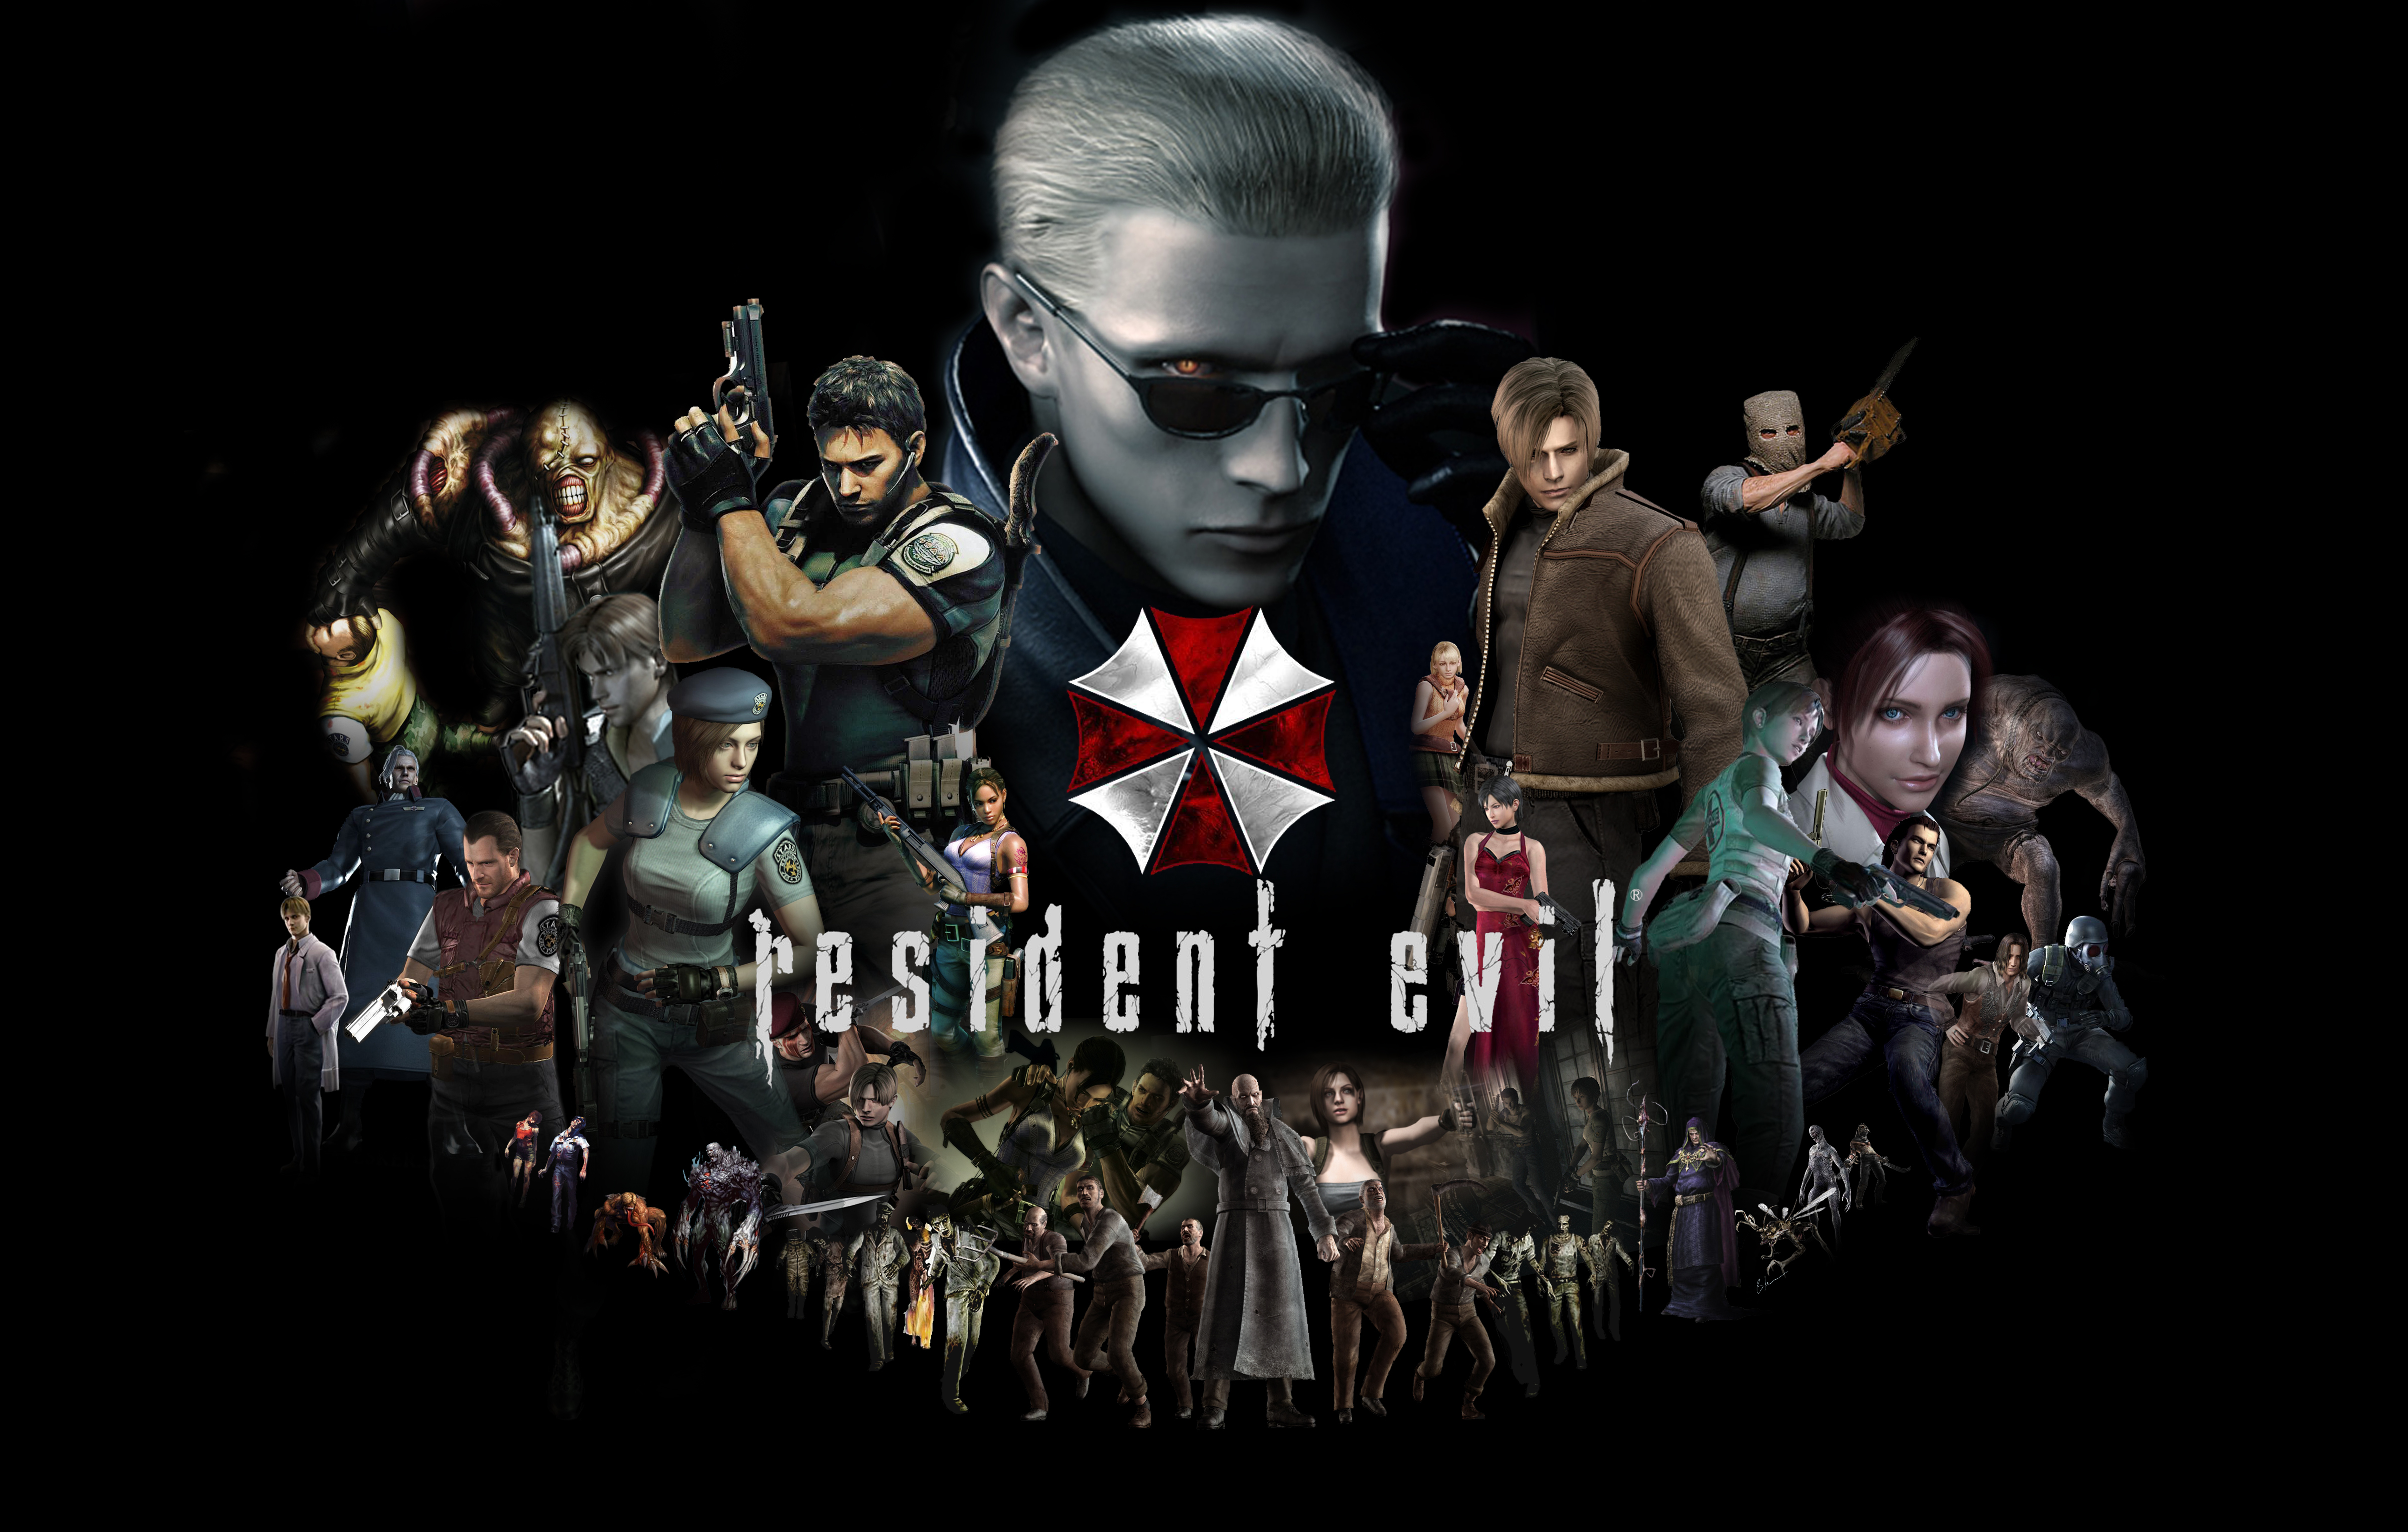 A Definitive Ranking of the 'Resident Evil' Games - Bloody Disgusting